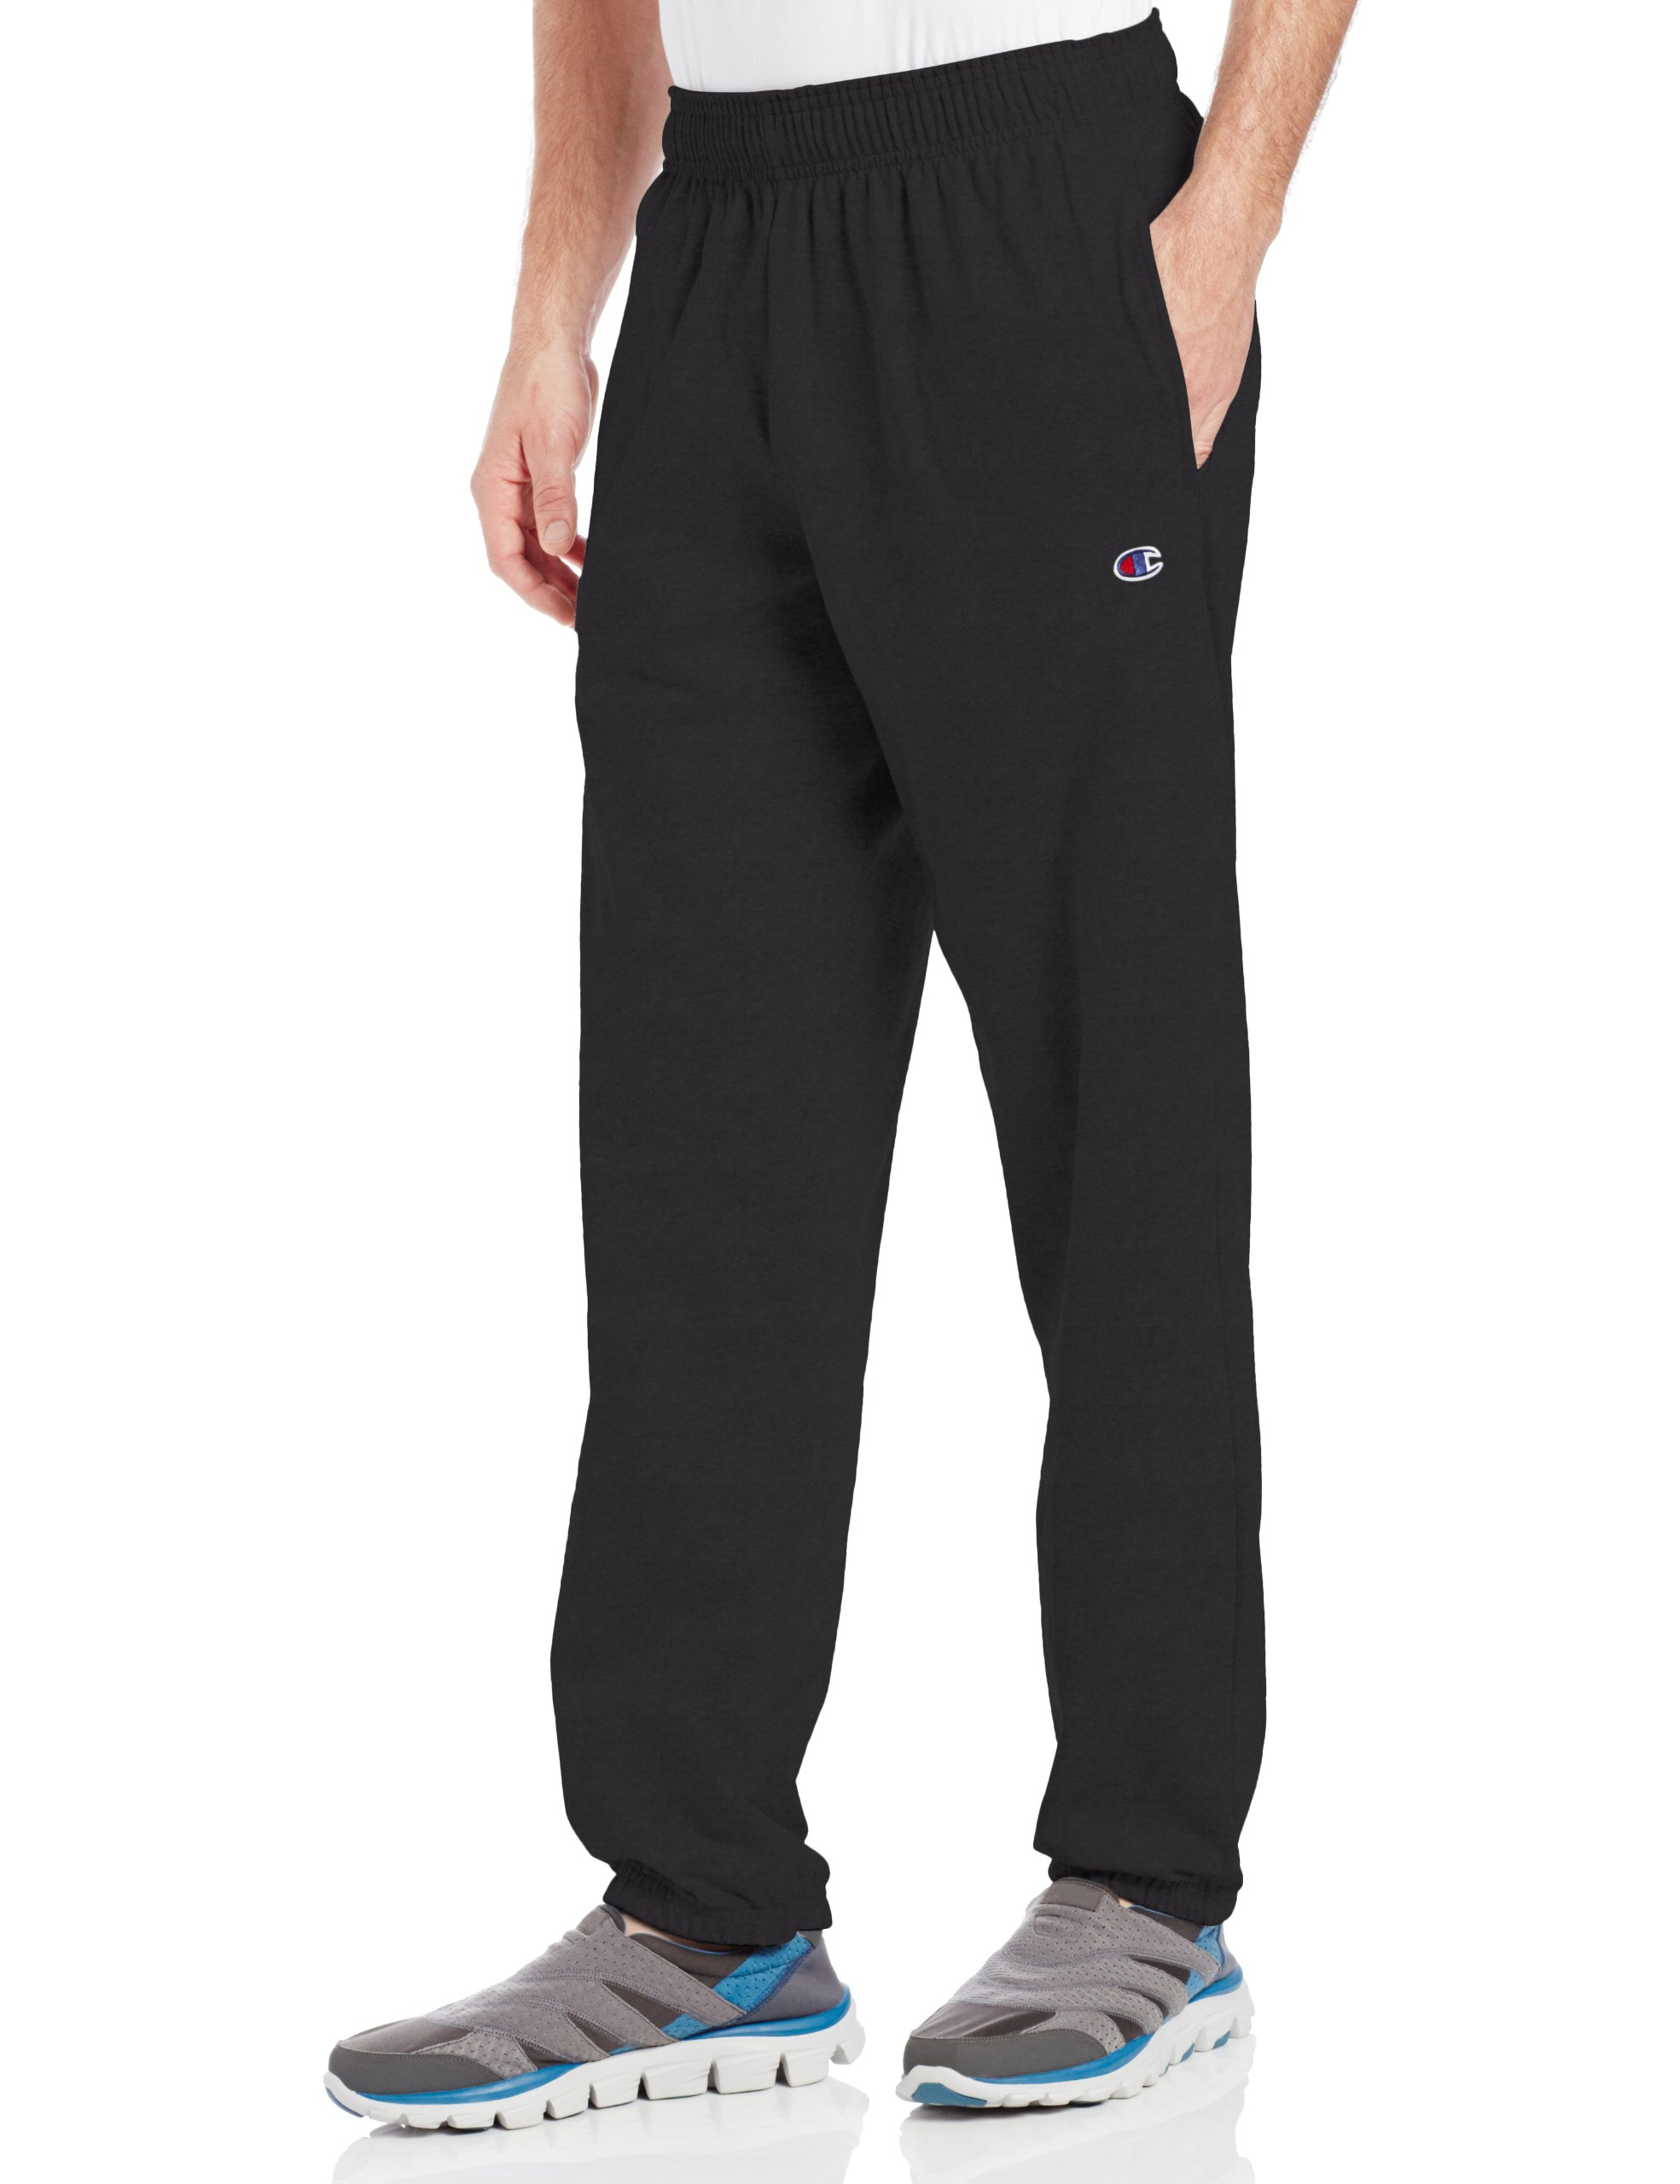 Champion Men's Closed Bottom Light Weight Jersey Sweatpant, Black, Small by Champion